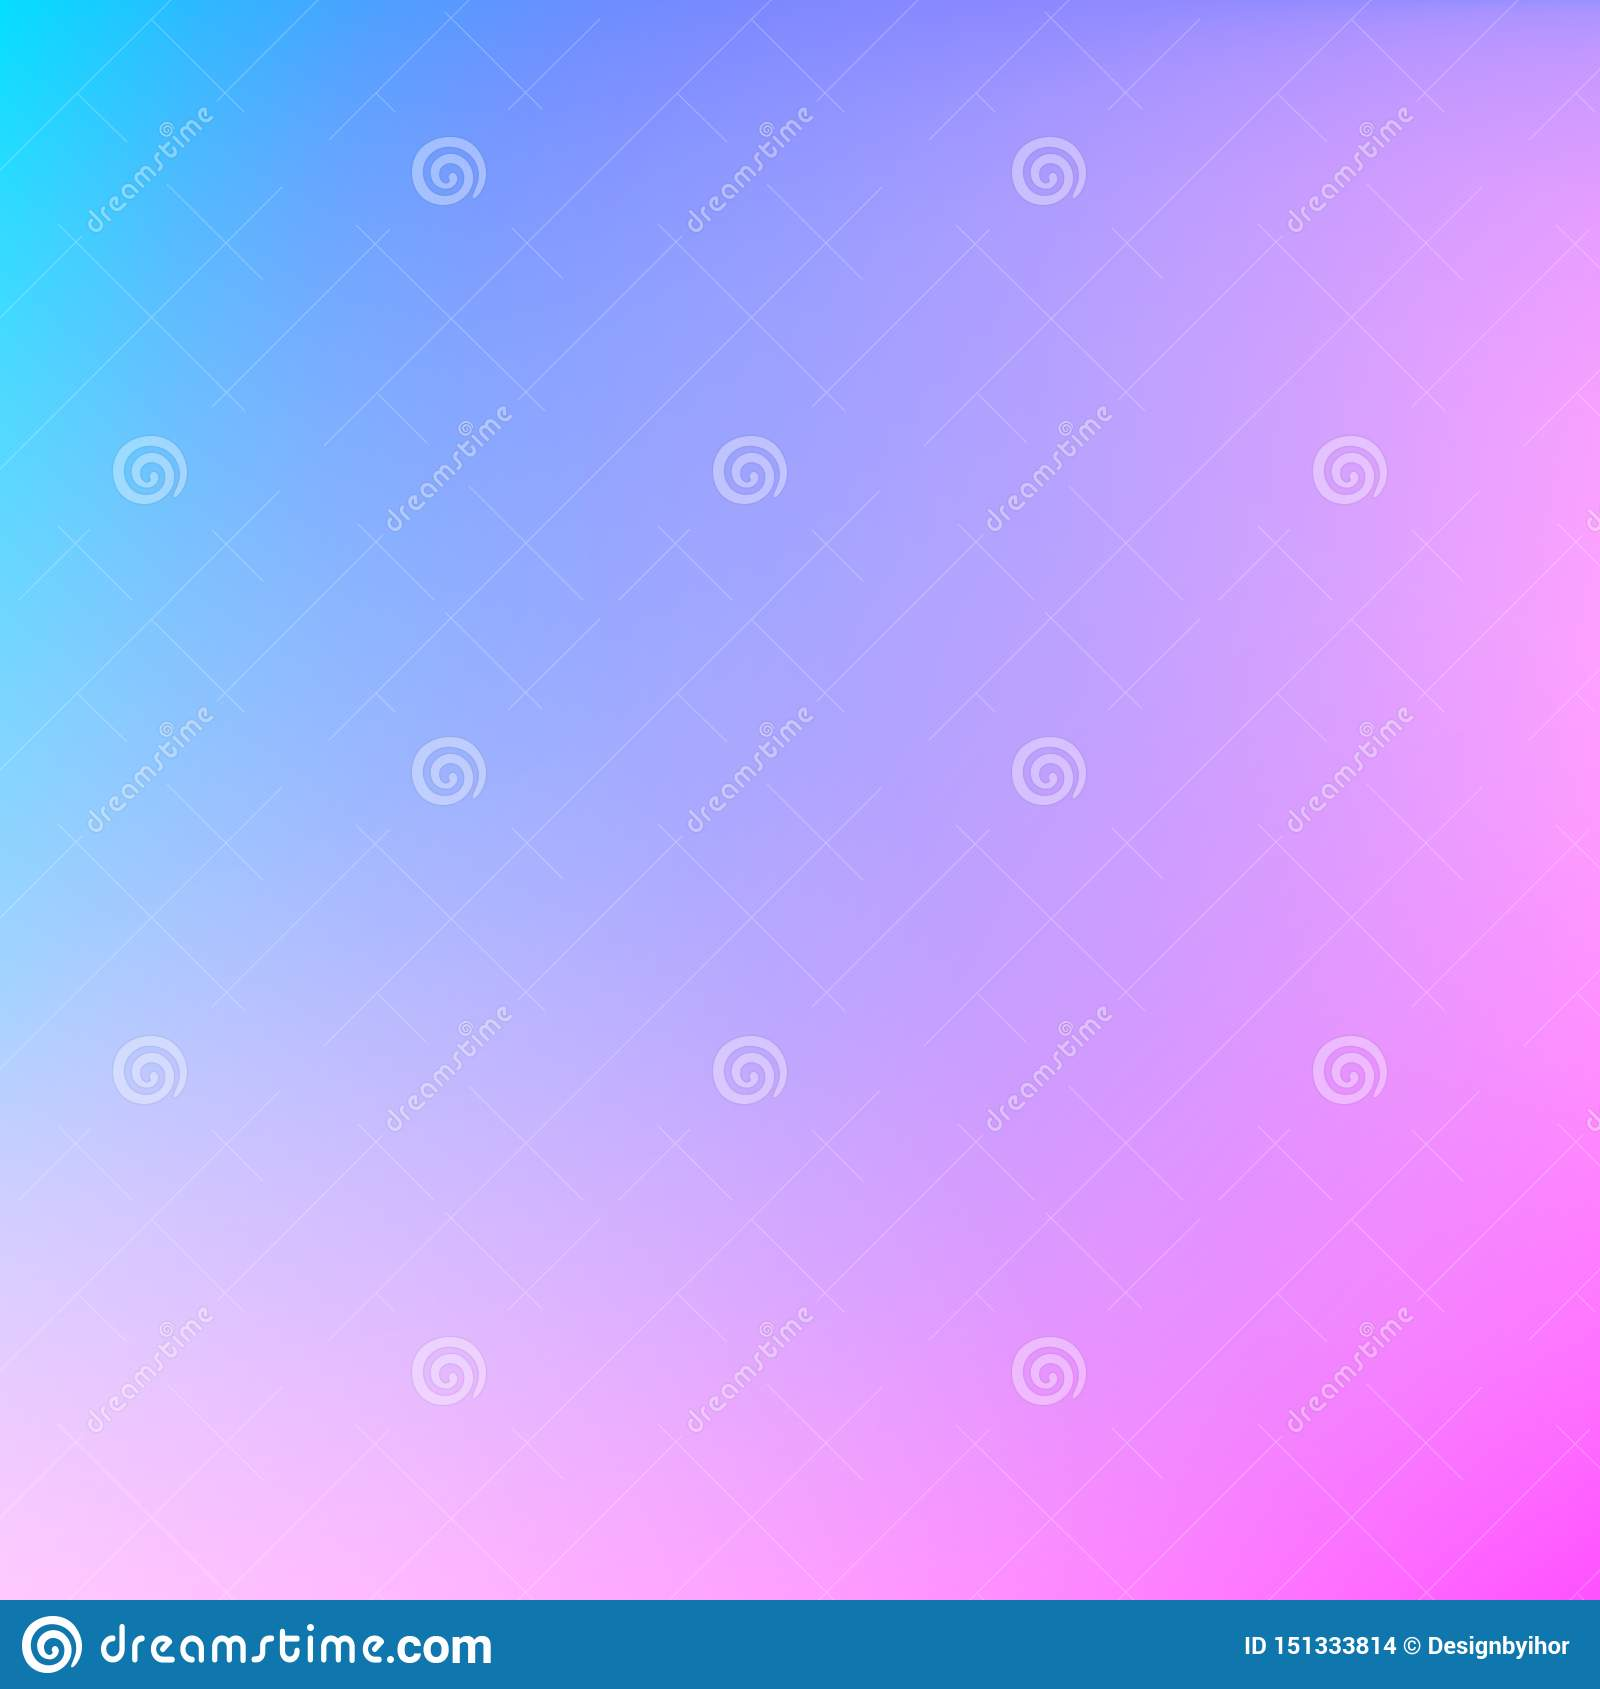 Abstract Blurred Gradient Mesh Background Pastel Blue And